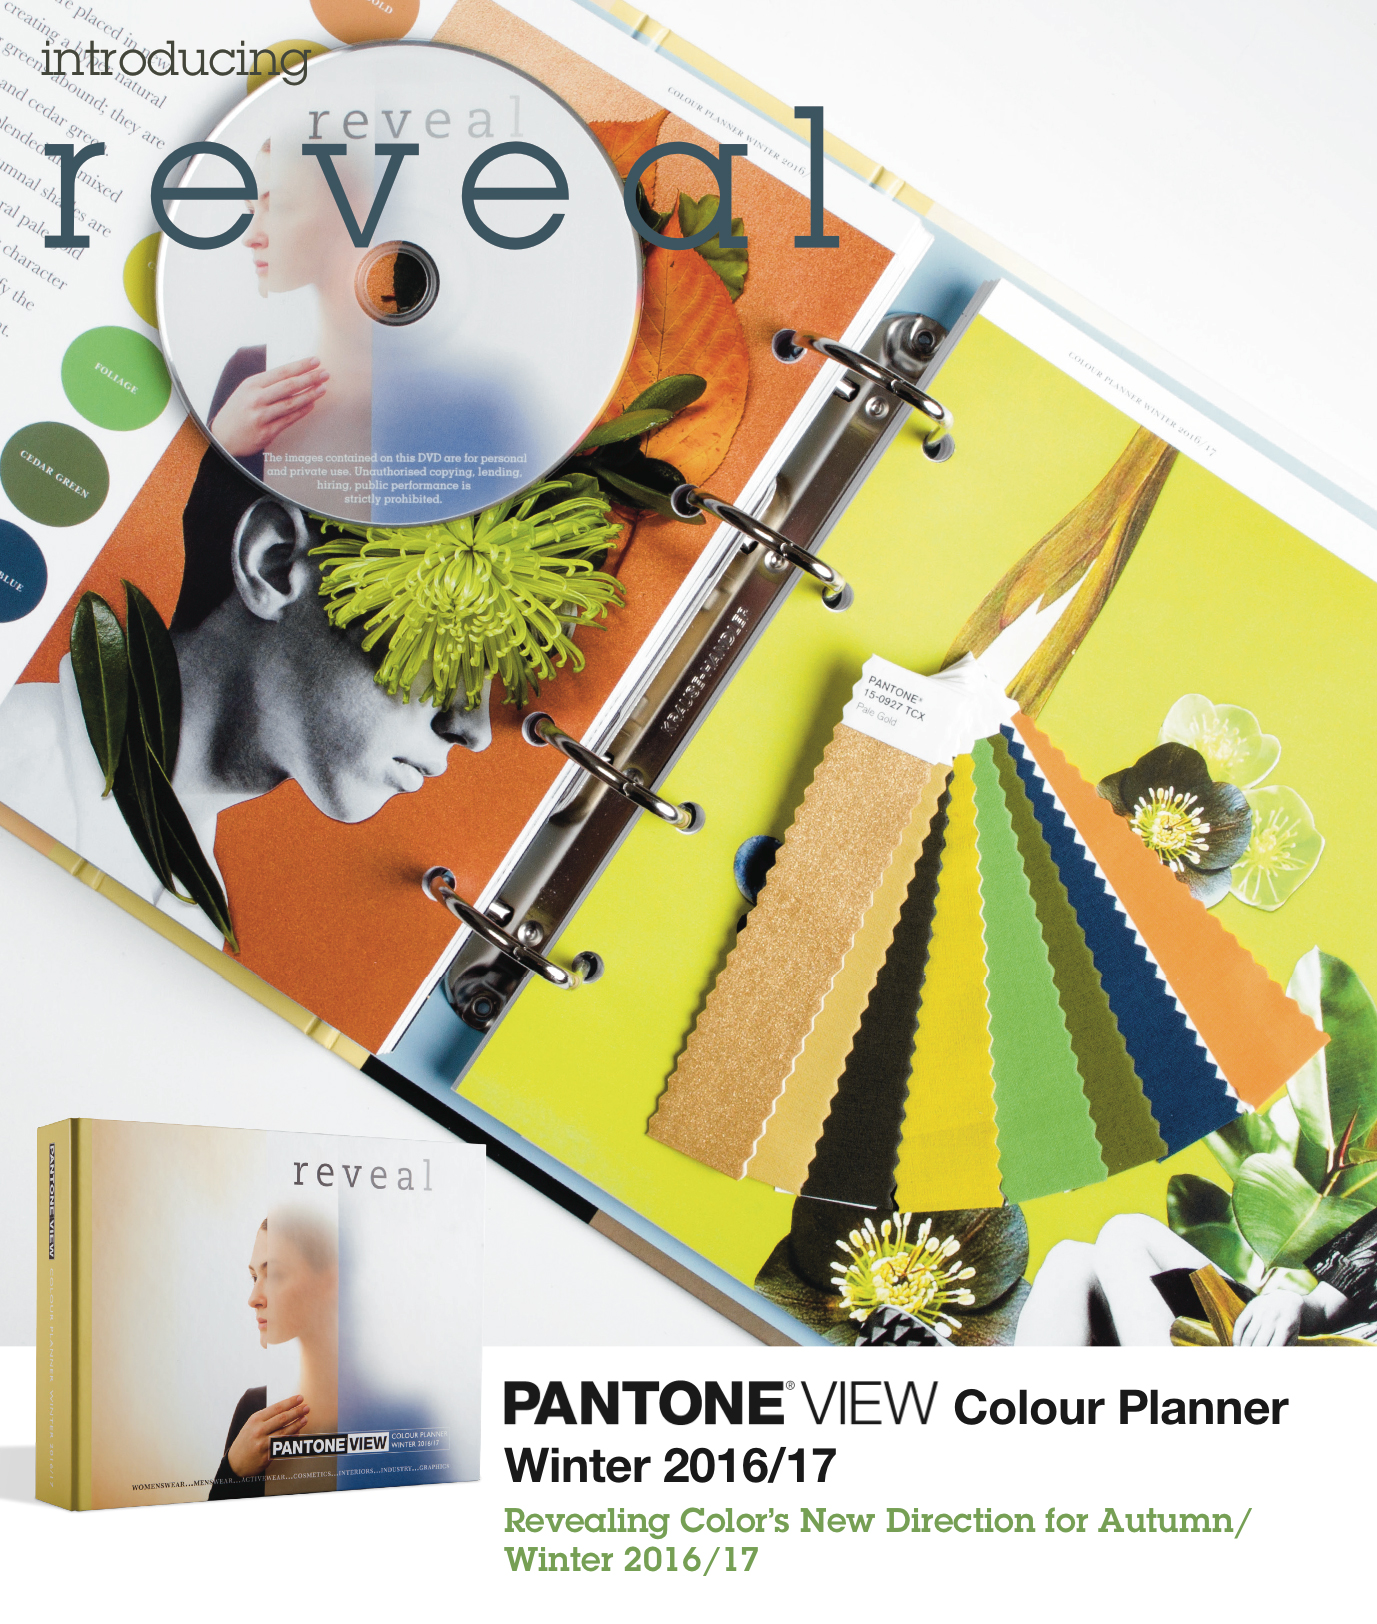 PANTONEVIEW-Colour-Planner-AW16-17-Large